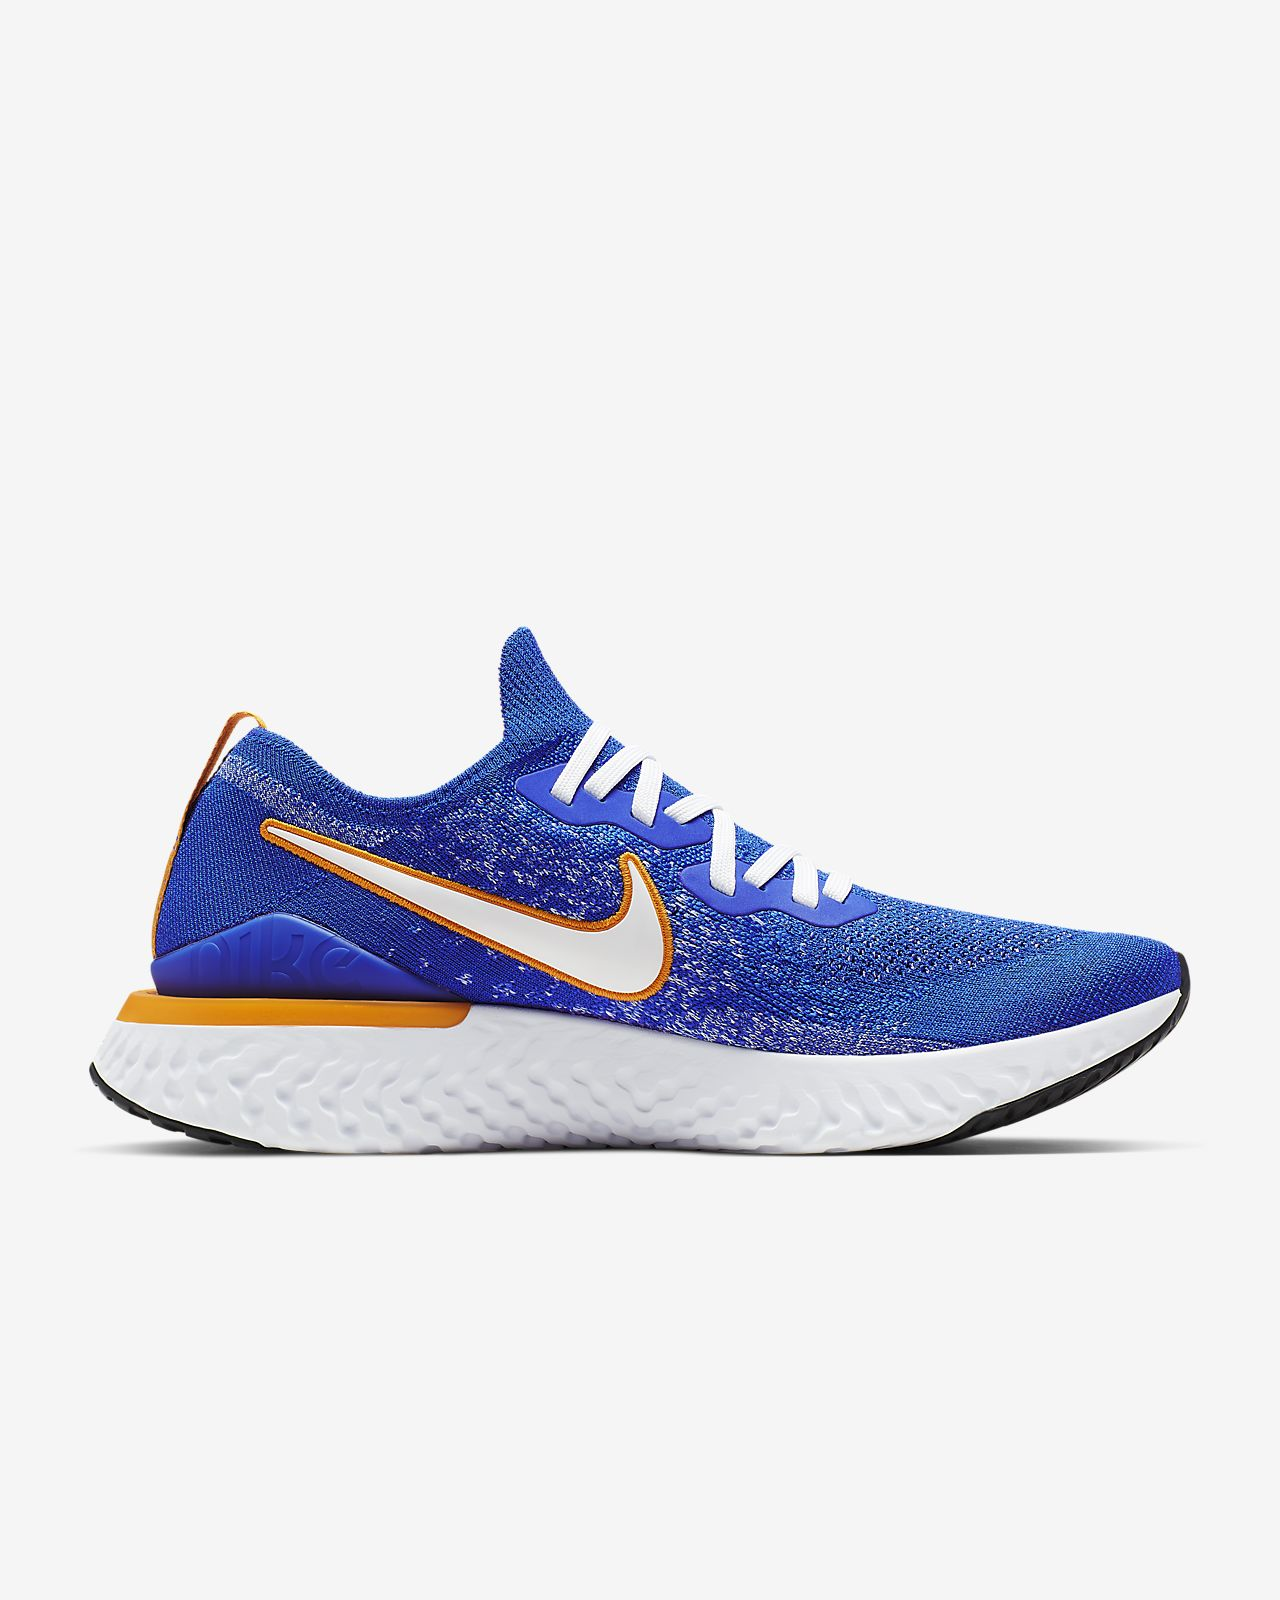 cb6b7de5ba020 Nike Epic React Flyknit 2 Men s Running Shoe. Nike.com